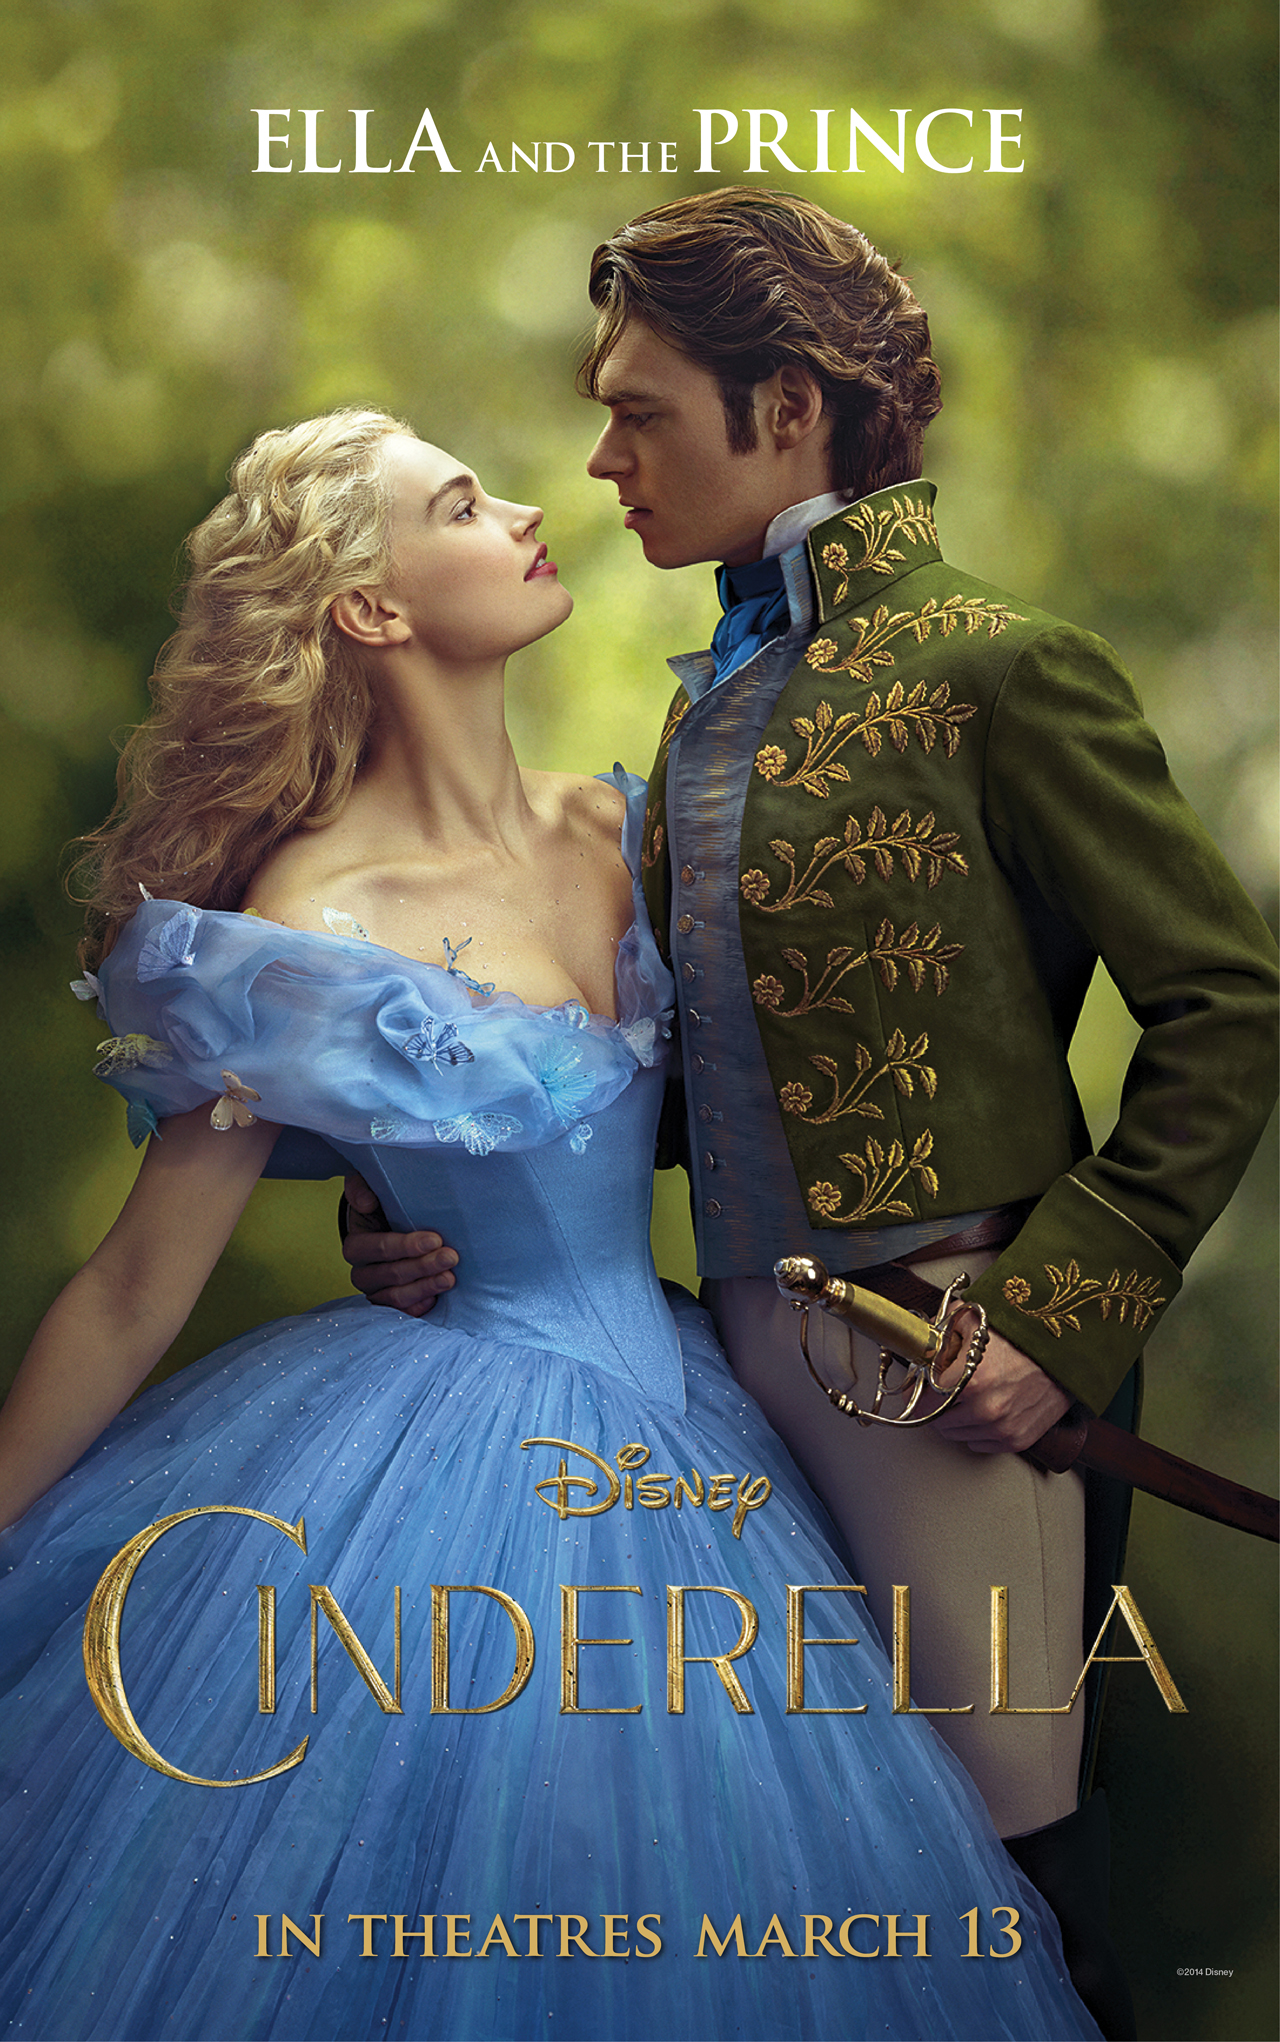 Cinderella poster 2015 - Ella and the Prince